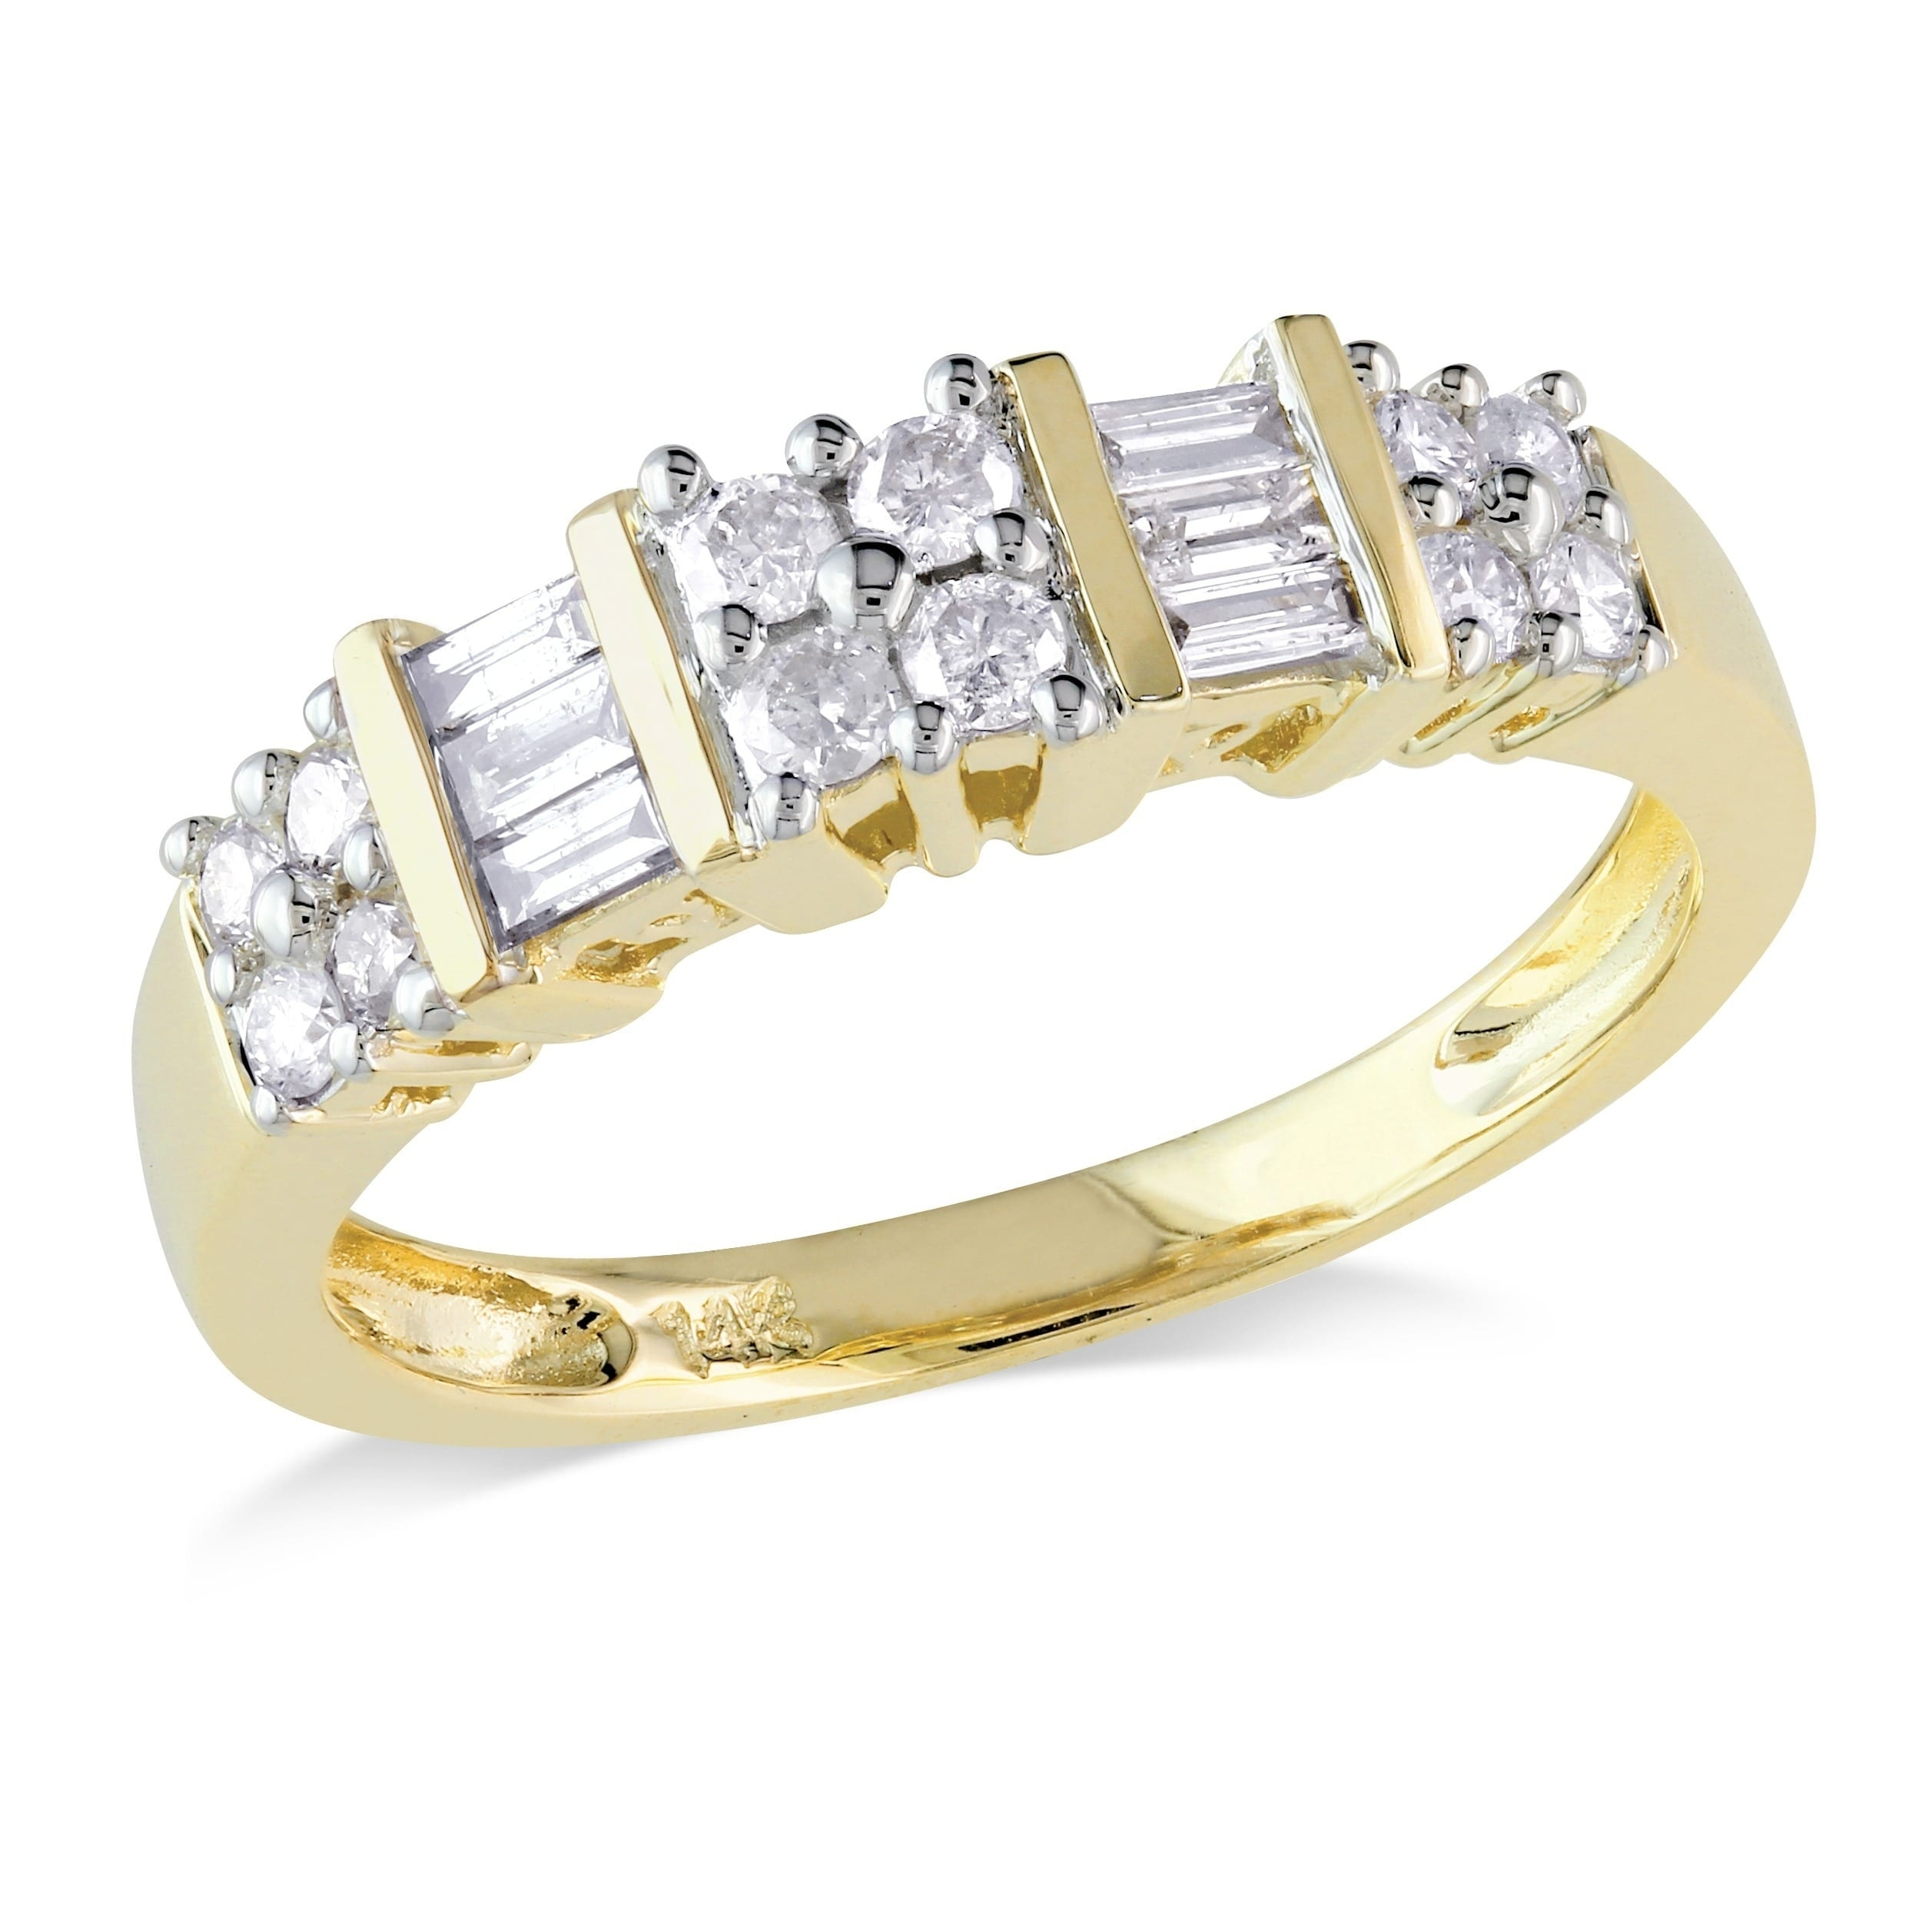 Shop Miadora 14K Yellow Gold 1/2Ct Tdw Baguette Diamond Anniversary Pertaining To 2017 Round And Baguette Diamond Anniversary Bands In 14K White Gold (View 13 of 15)